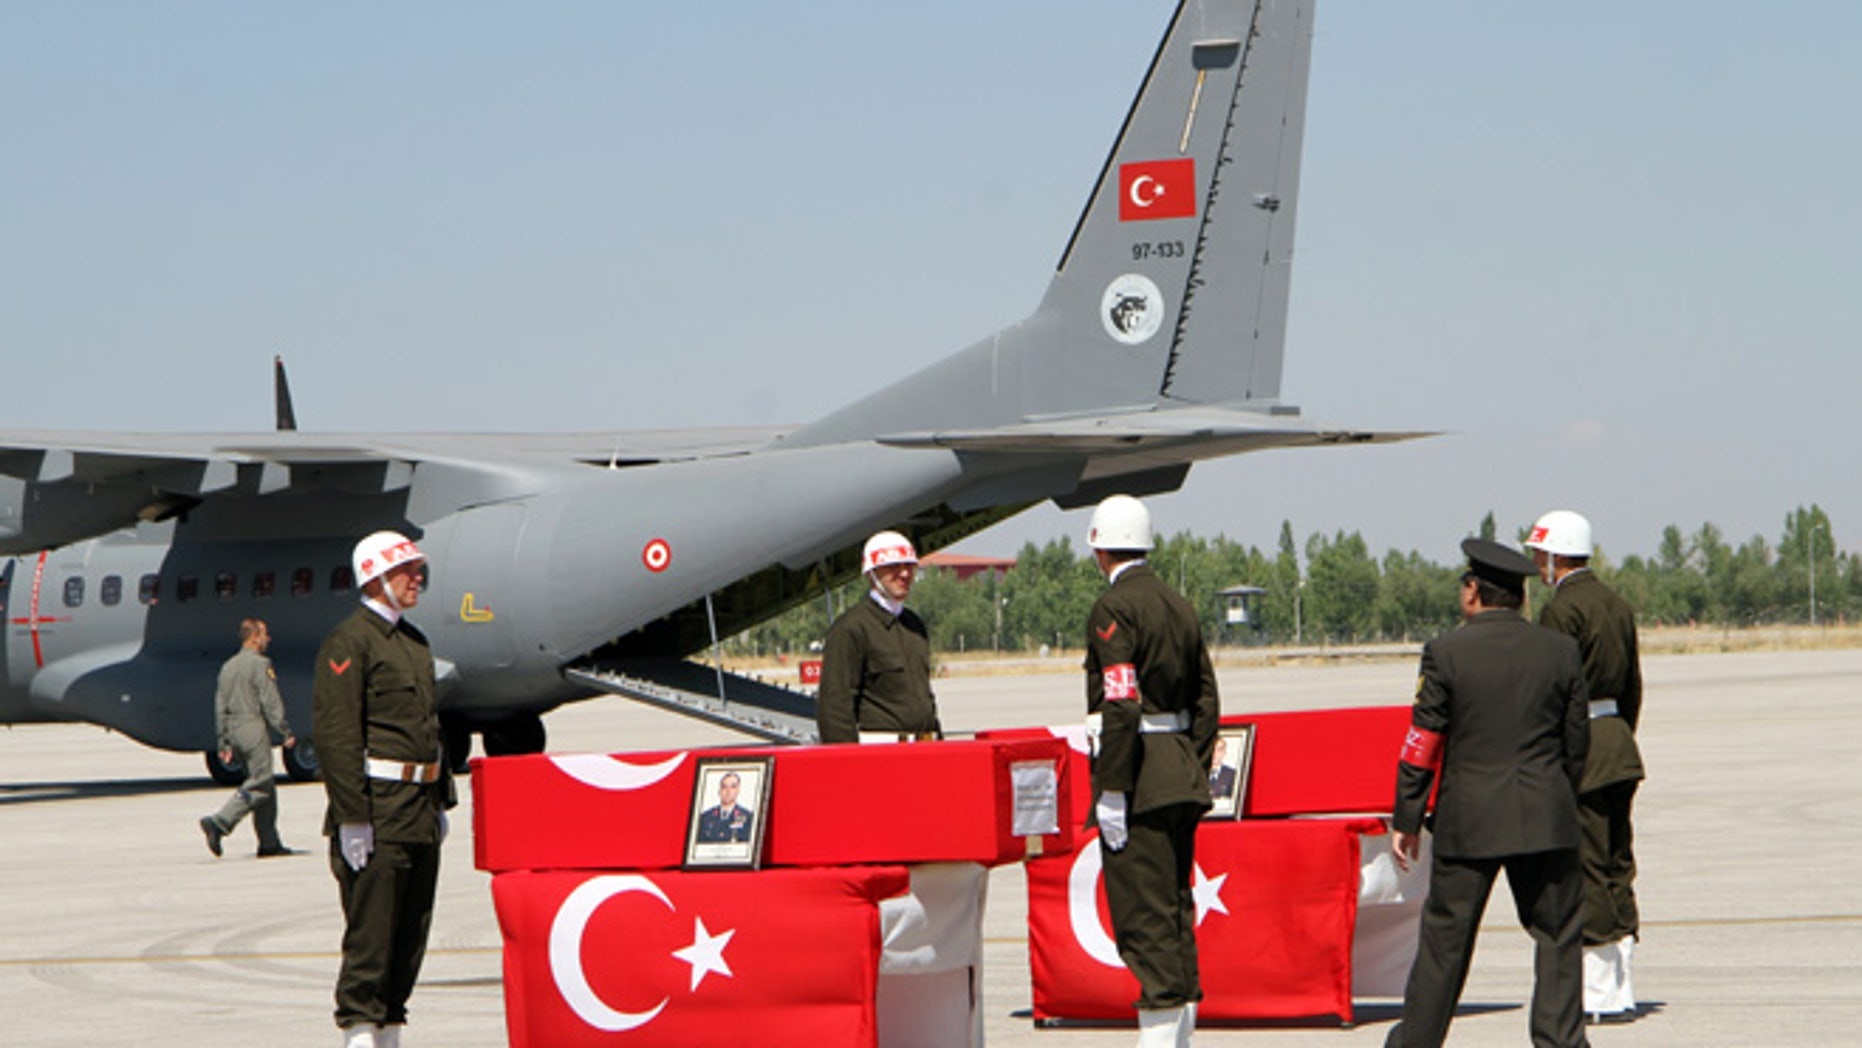 Sept. 8, 2015: Turkish soldiers prepare the coffins of fallen comrades before a ceremony at the military airport in Van, Turkey.